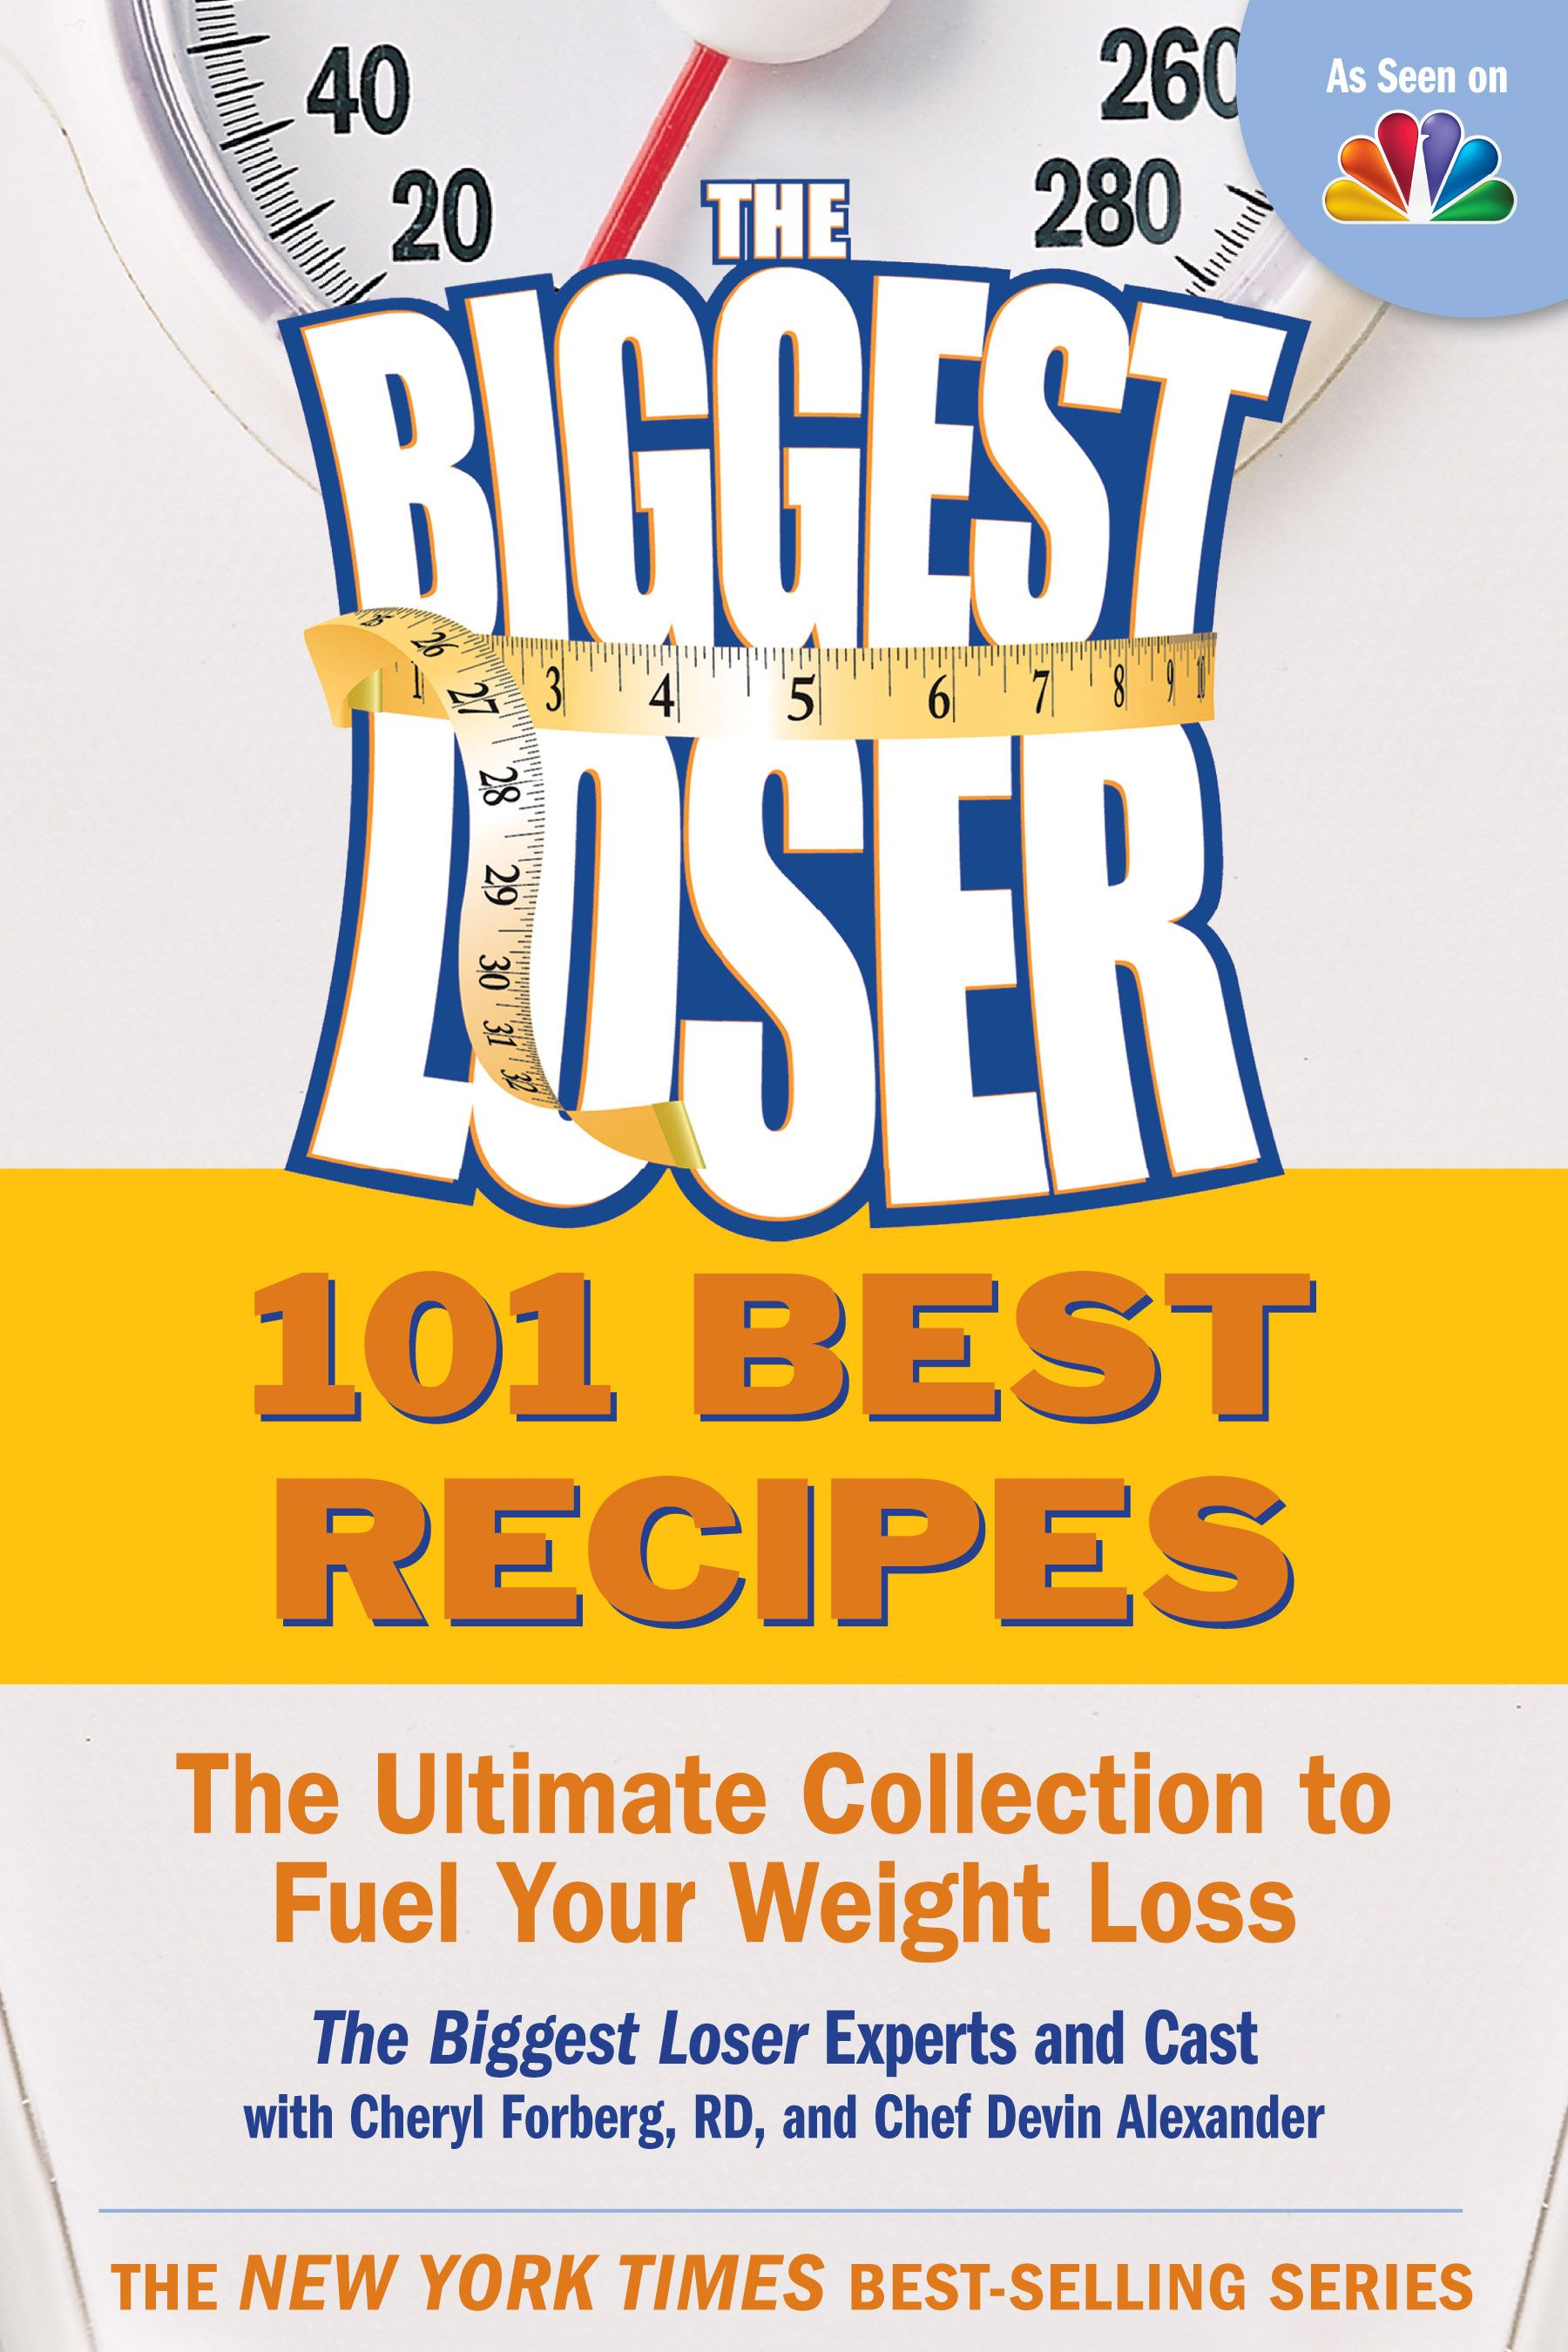 101 Best Recipes from the Biggest Loser: The Ultimate Collection to Fuel Your Weight Loss